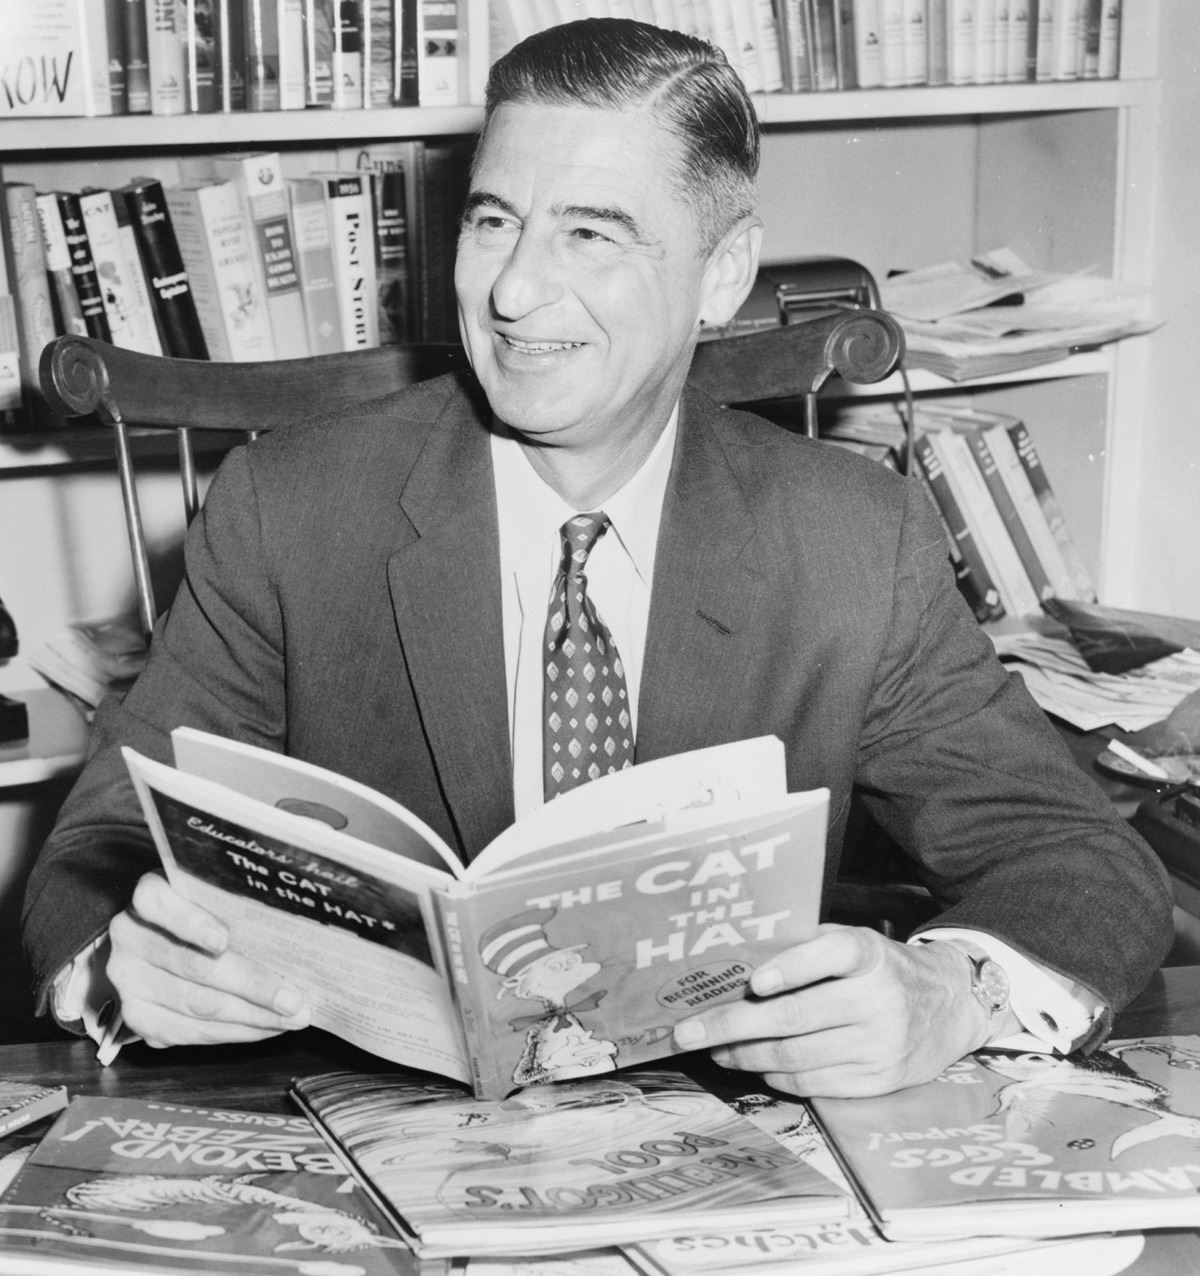 Picture of Theodor Seuss Geisel  (Dr. Seuss)